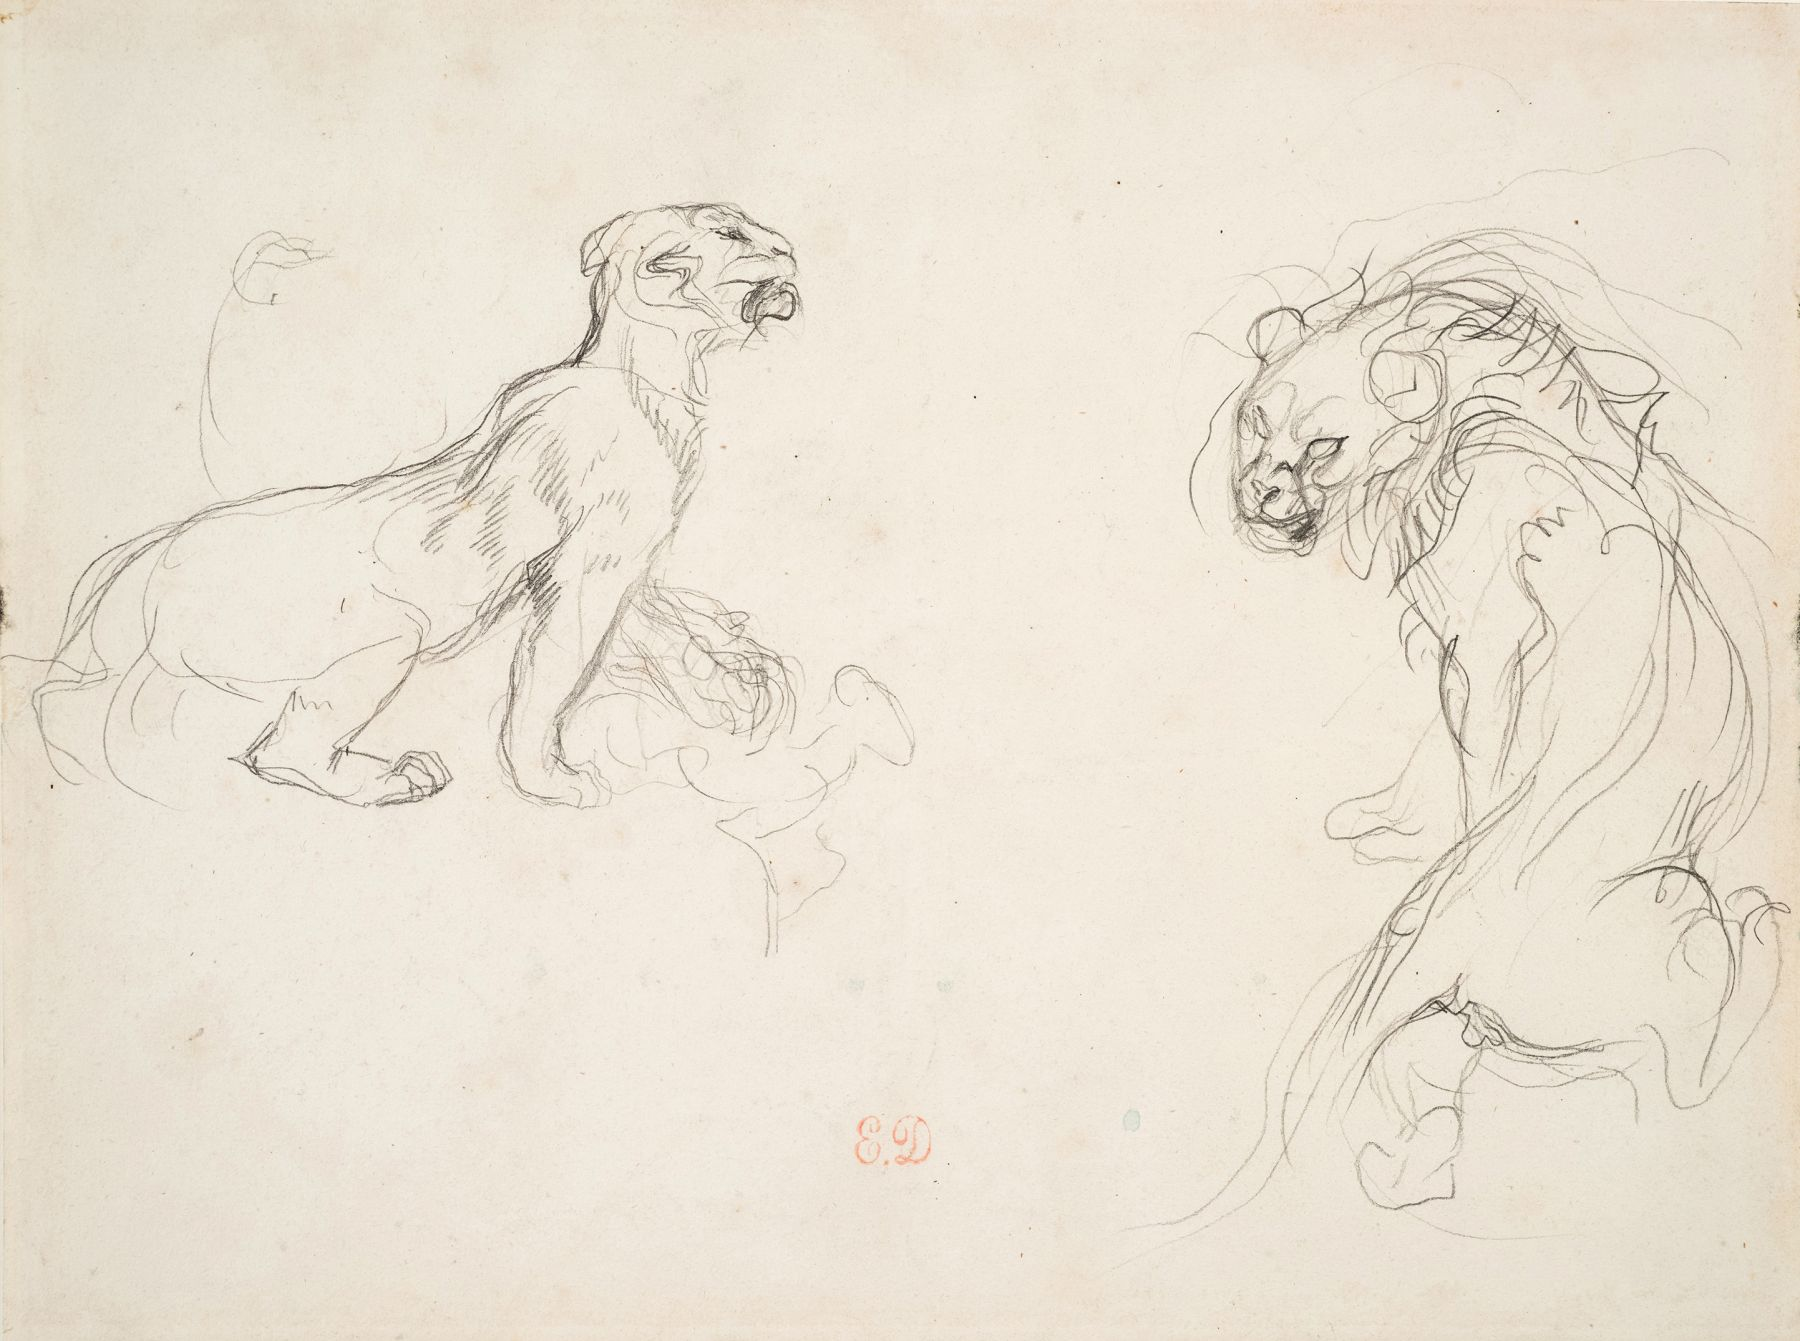 Eugène Delacroix, A Lion and a Lioness Pencil on paper 6 7/8 x 9 inches